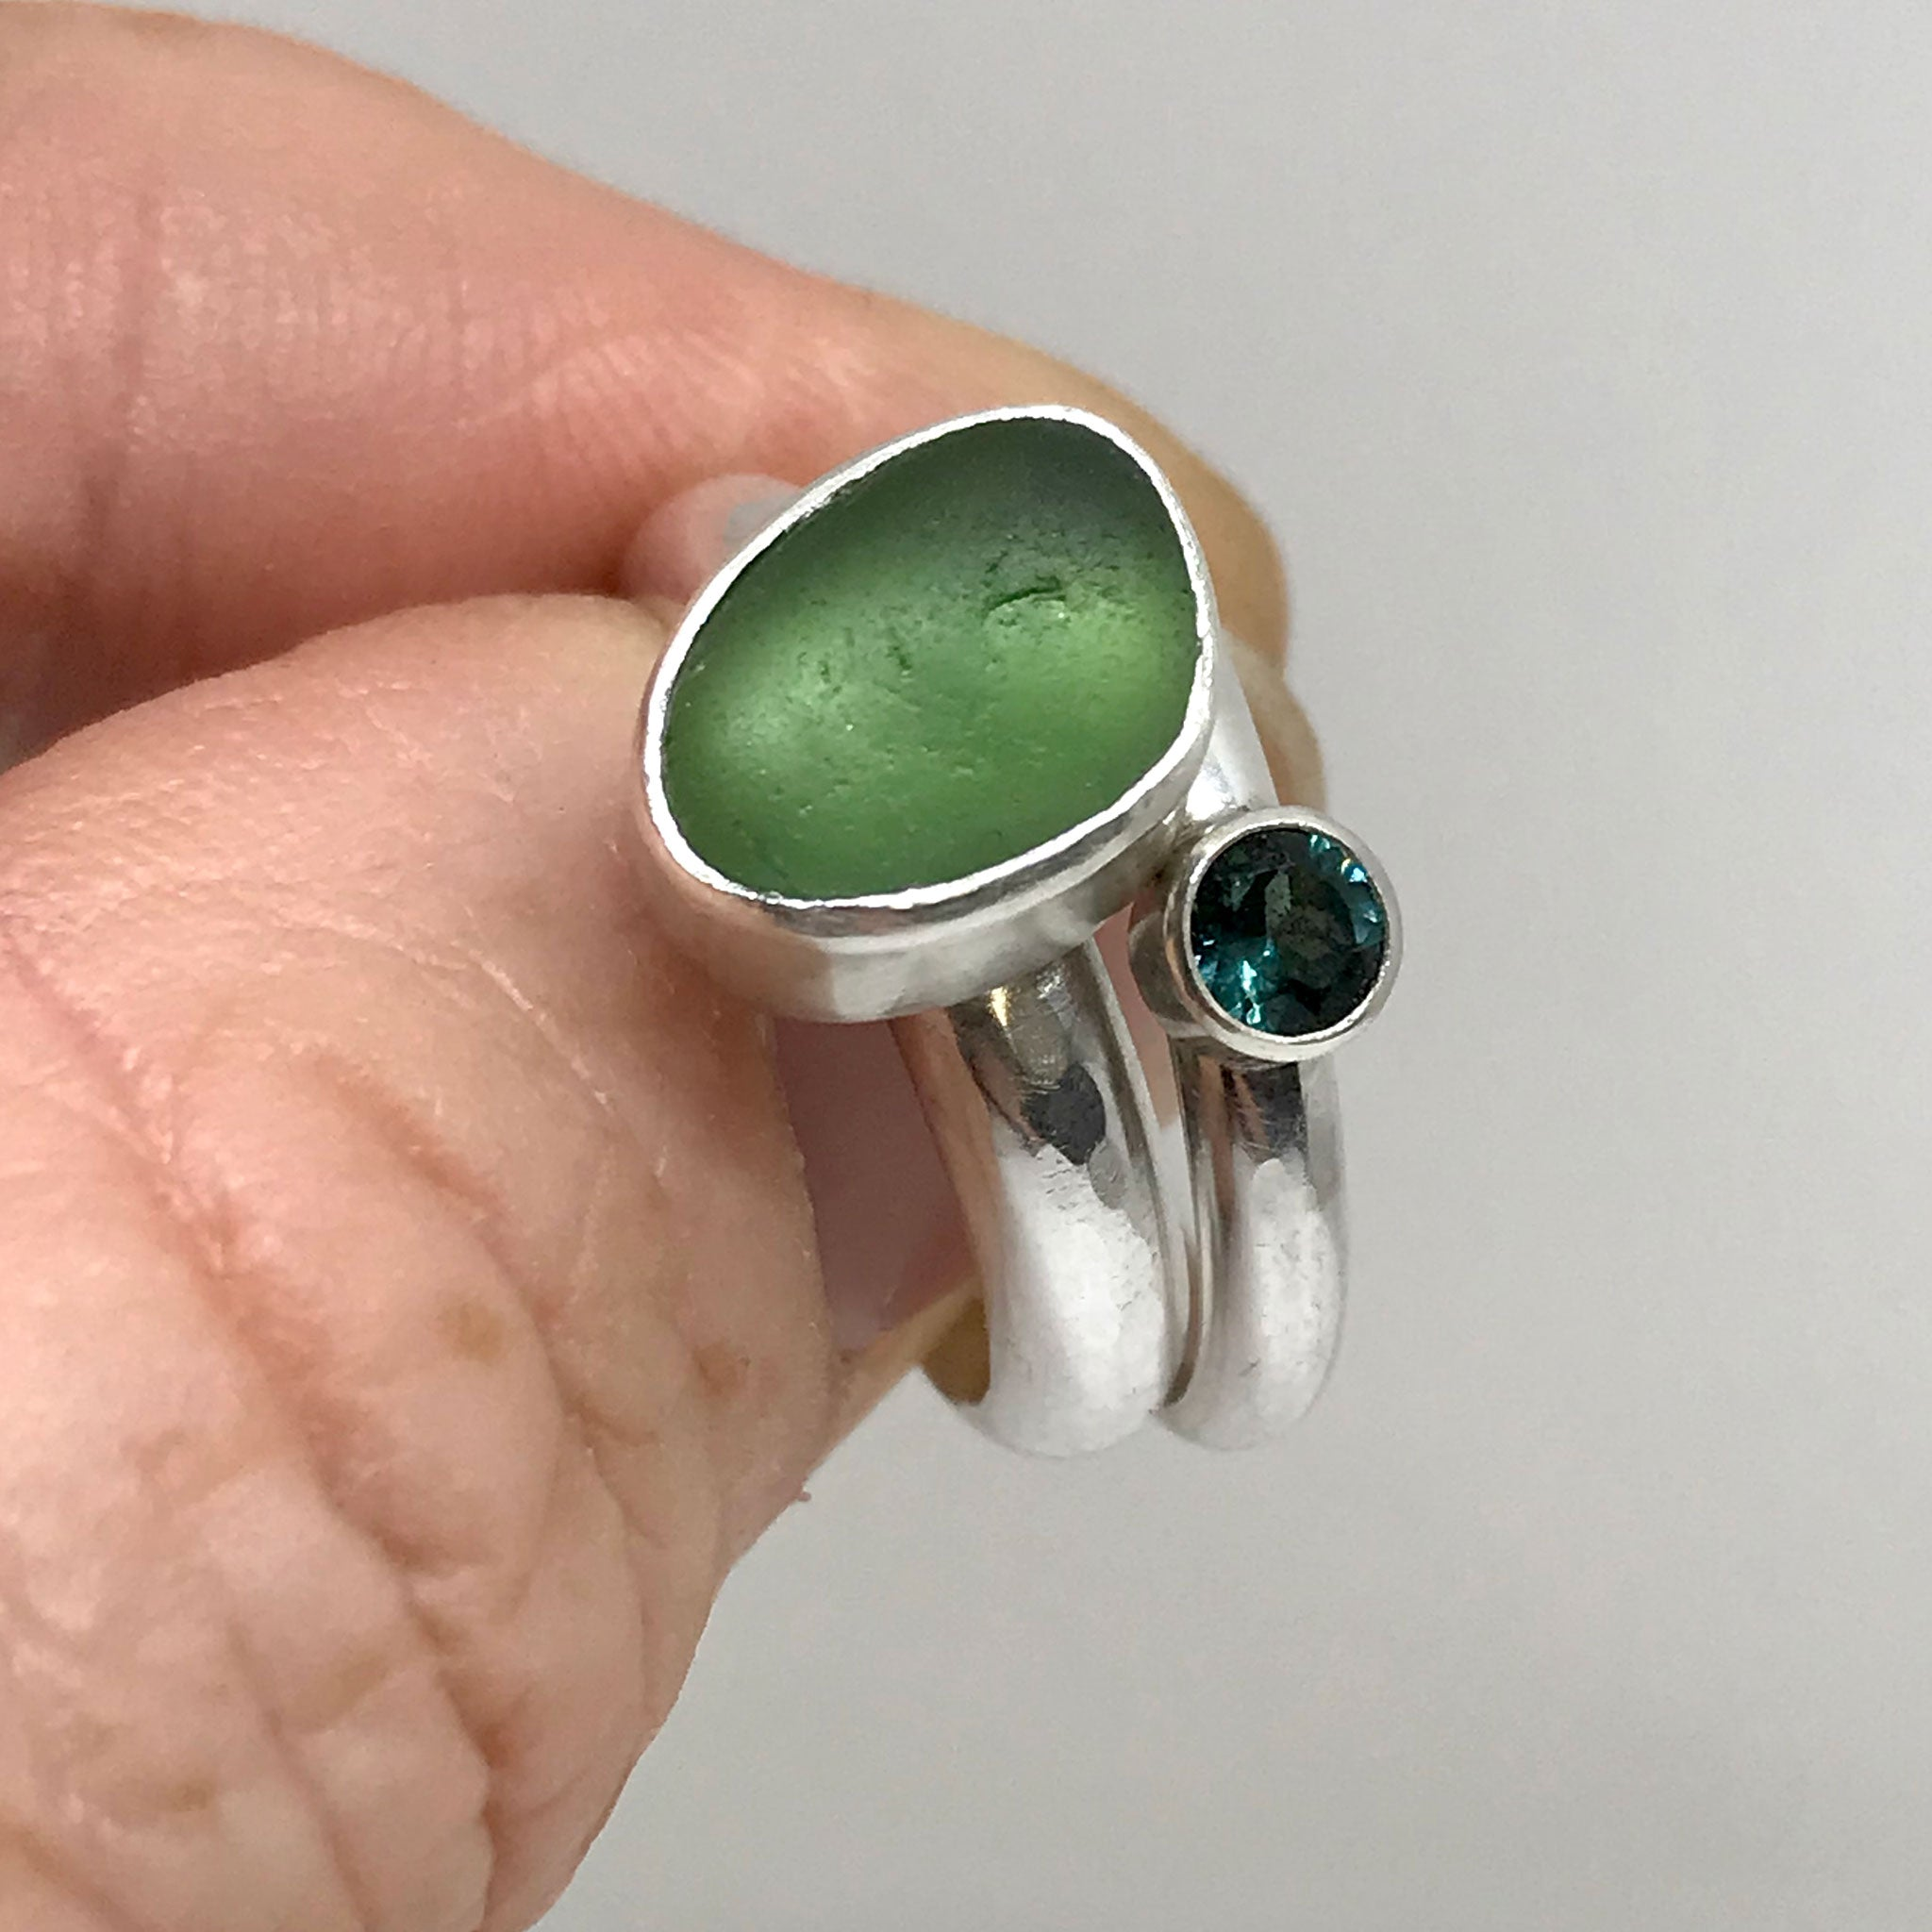 green seaglass set in sterling silver ring with blue green tourmaline ring kriket broadhurst jewellery